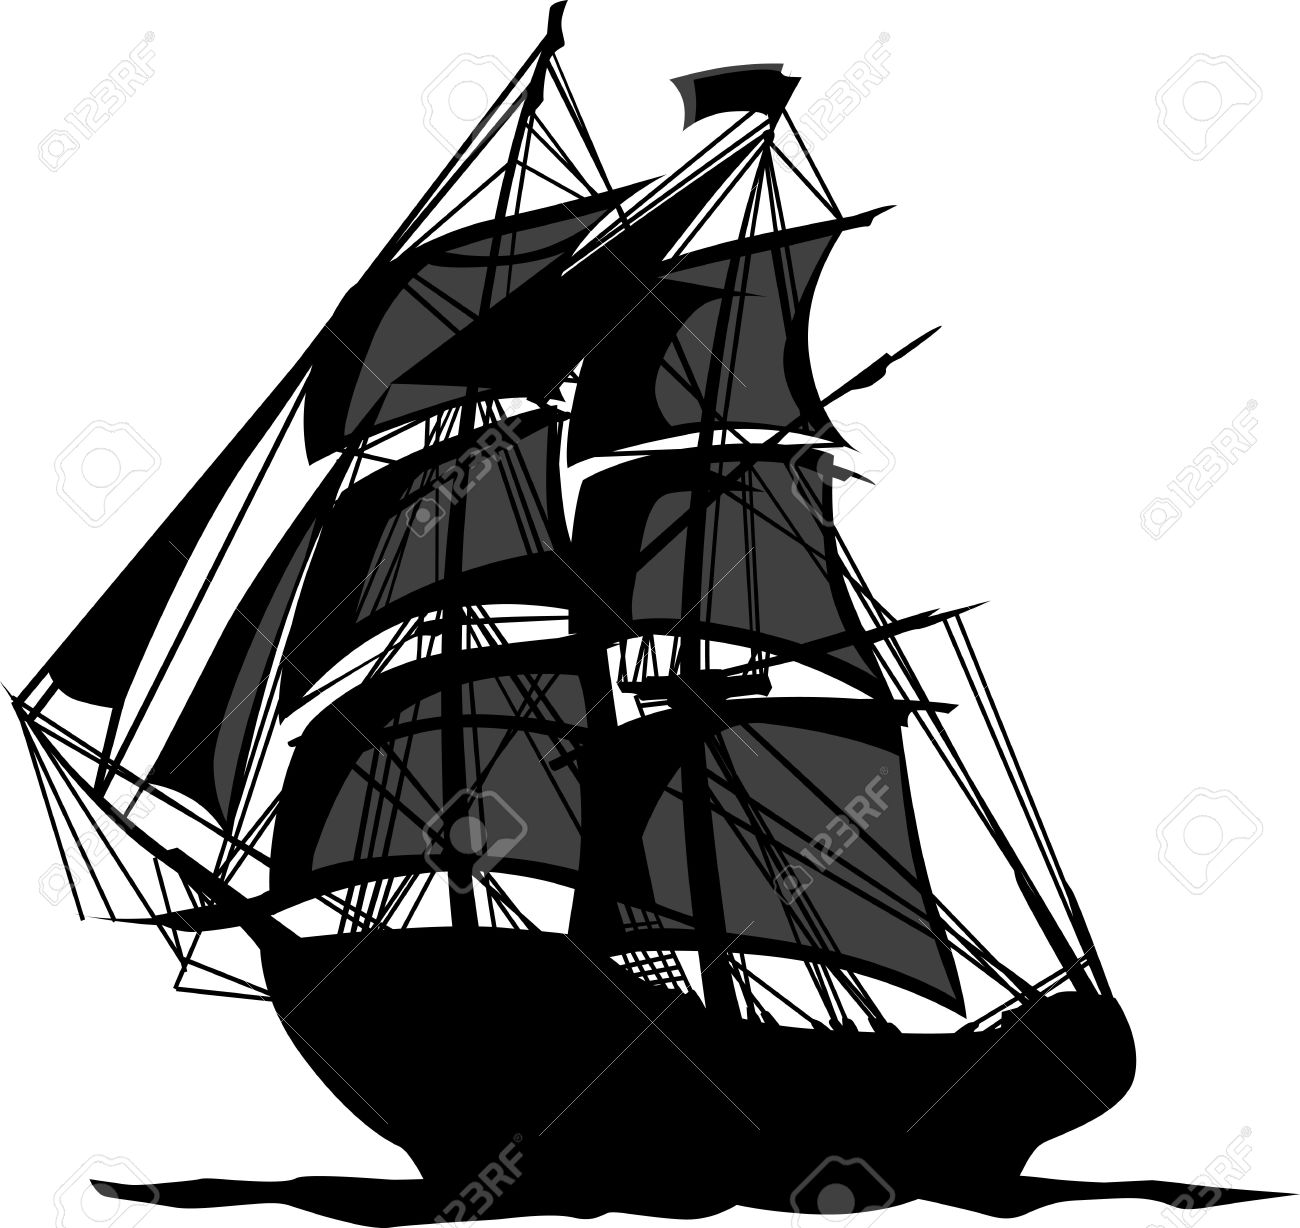 1300x1228 Sailing Pirate Ship With Sails Graphic Vector Image Royalty Free